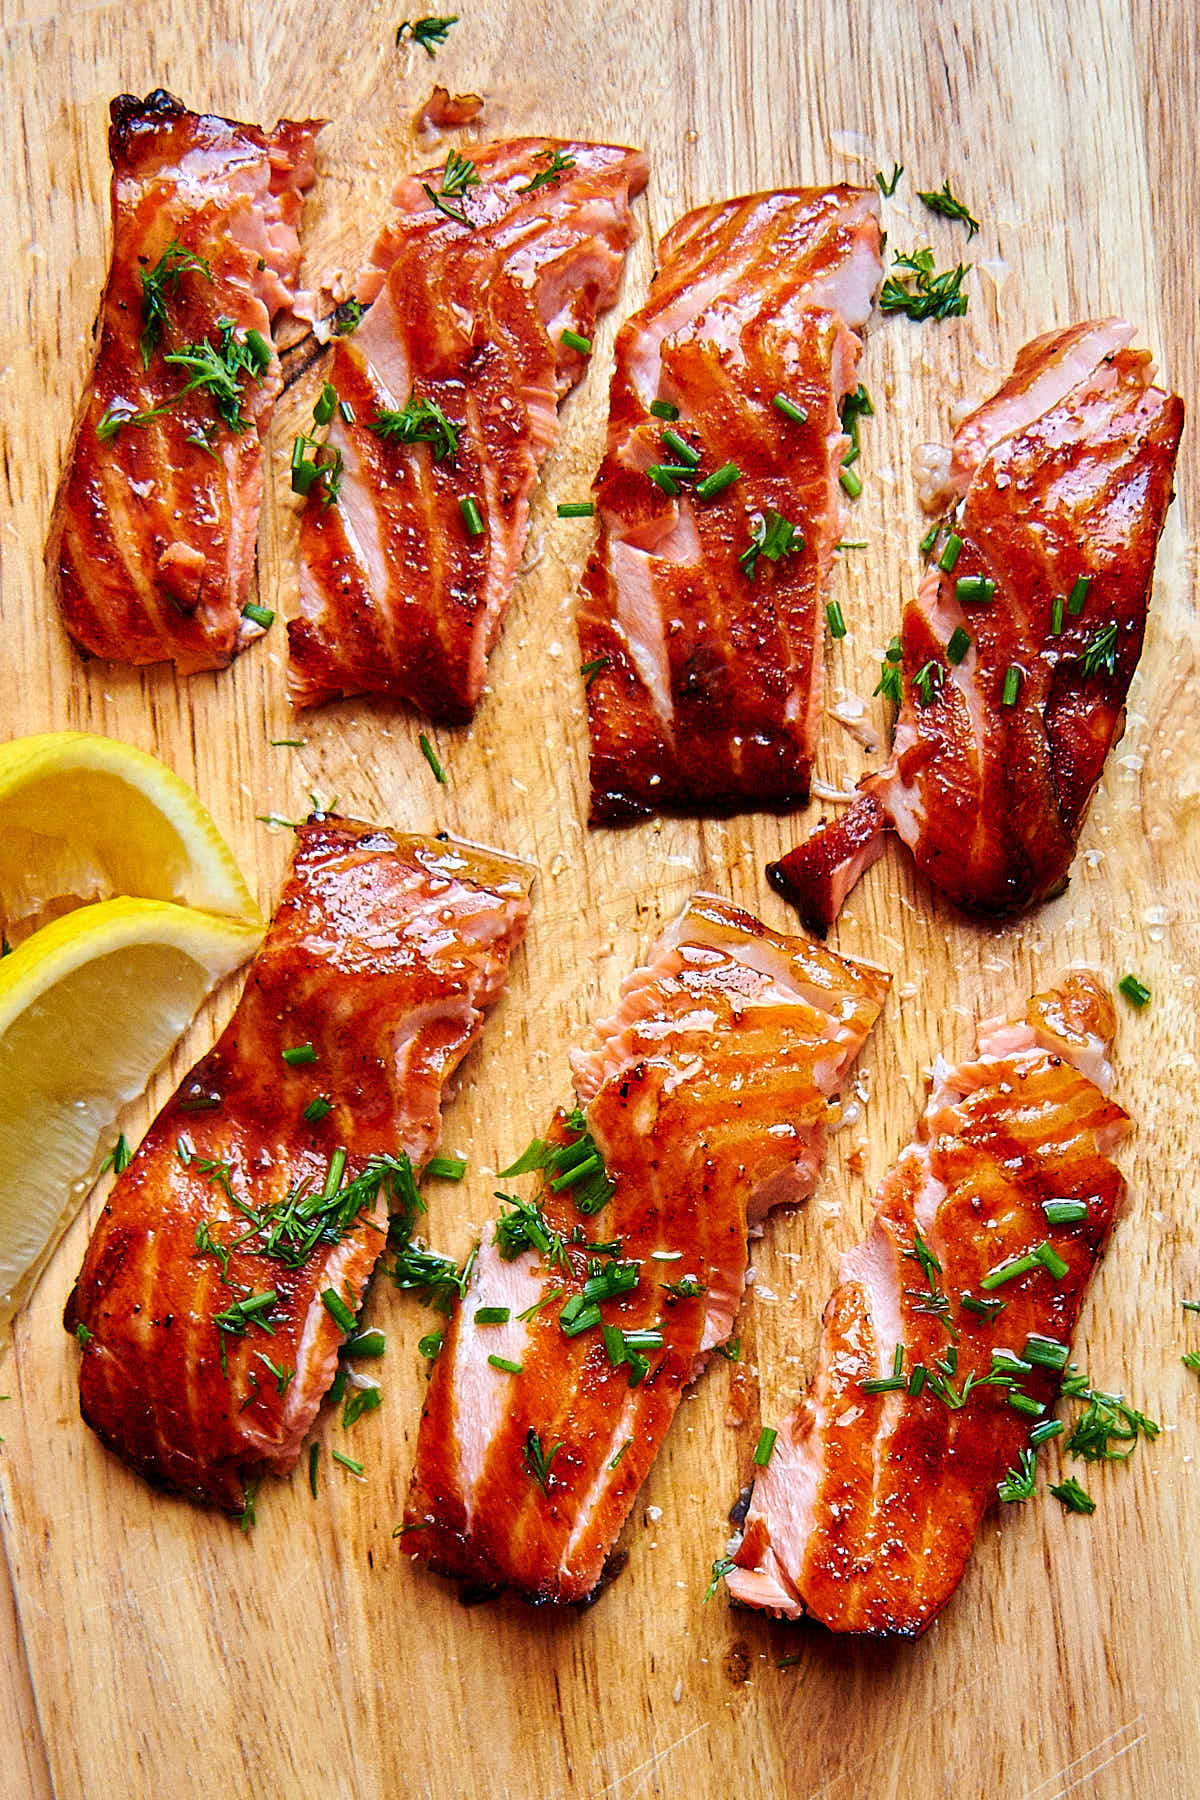 Air fried salmon filet pieces on a cutting board with lemon wedges on the side.